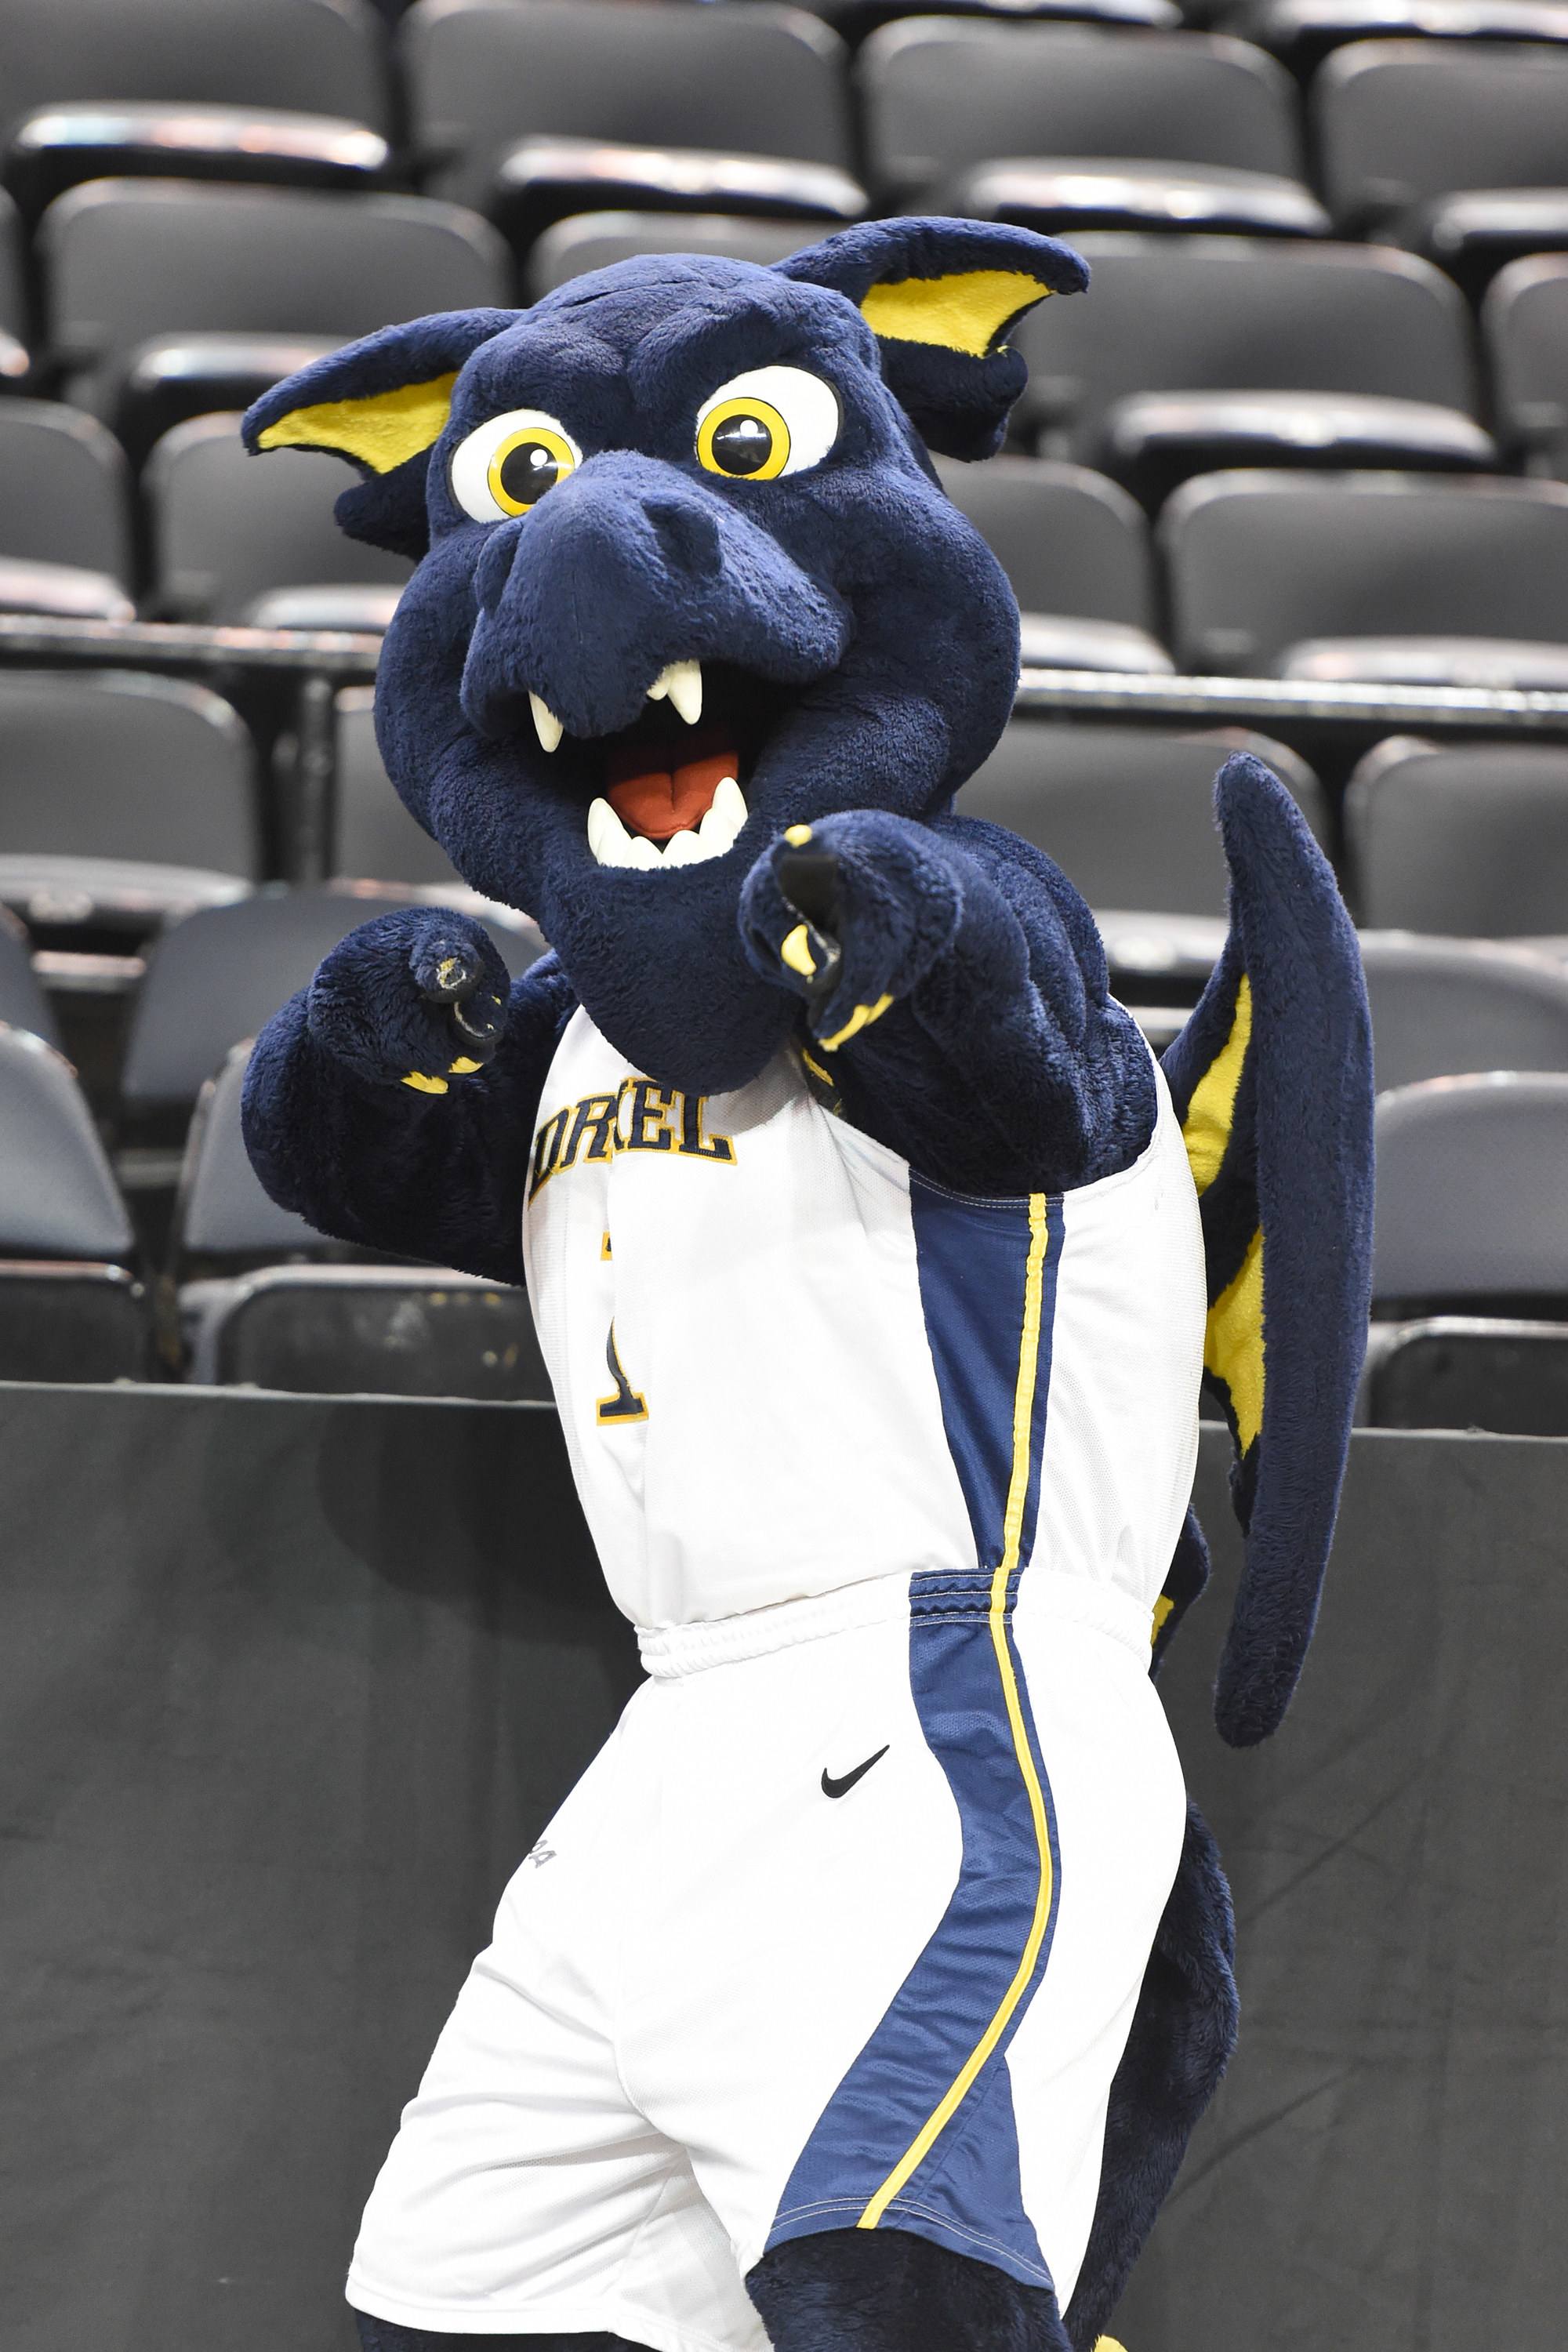 Blue Drexel mascot in a full jersey pointing at camera.